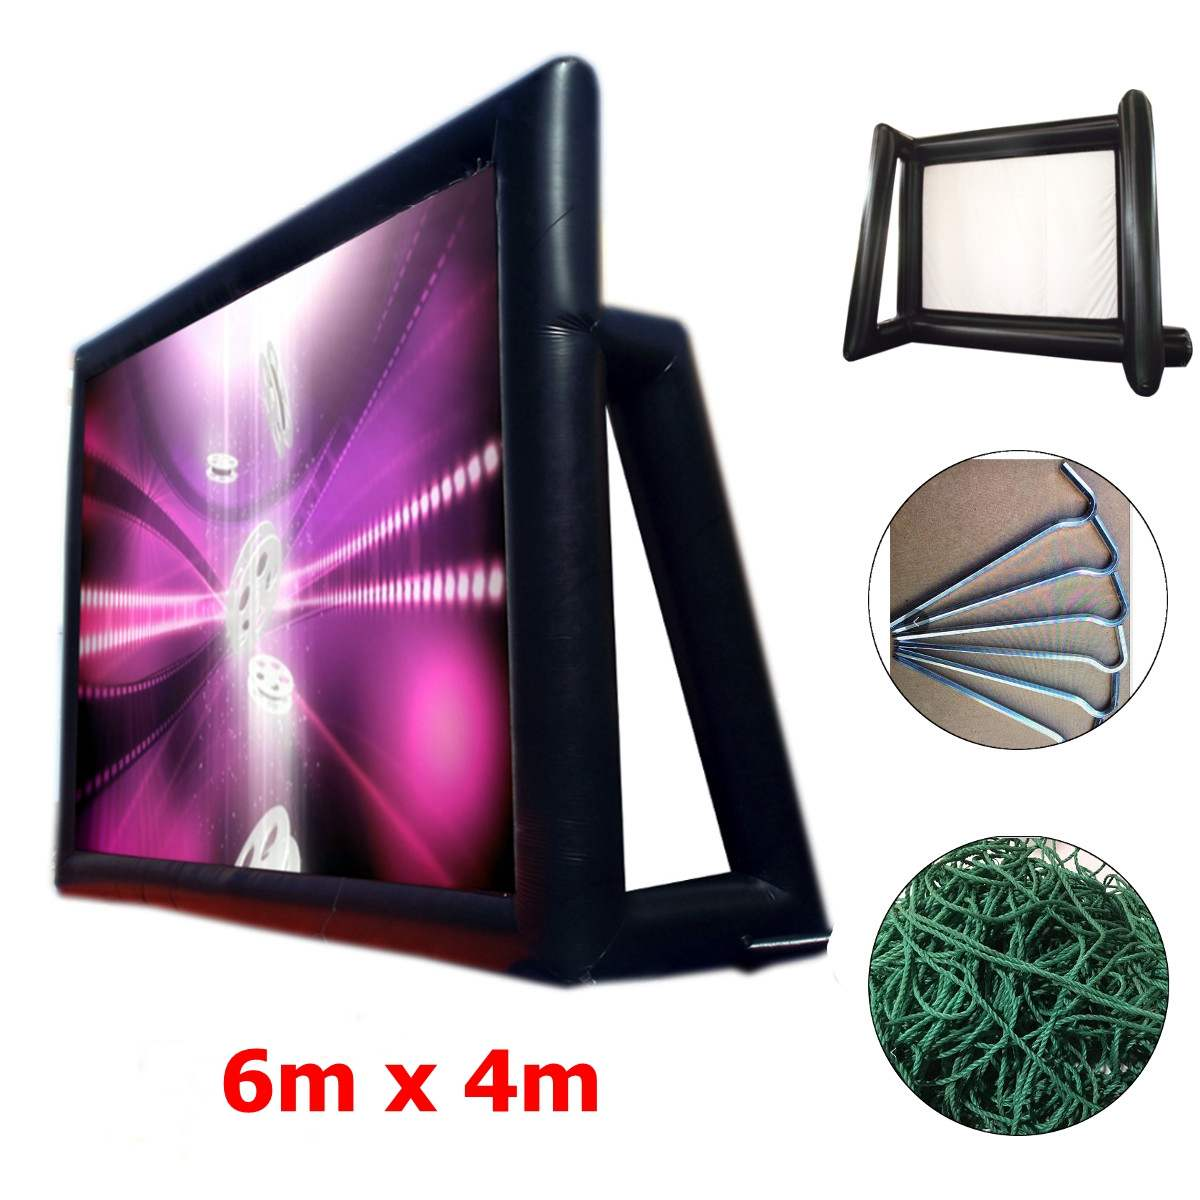 4.4mx2.5m 16:9 inflatable movie screen inflatable rear projection movie screen inflatable film screen4.4mx2.5m 16:9 inflatable movie screen inflatable rear projection movie screen inflatable film screen